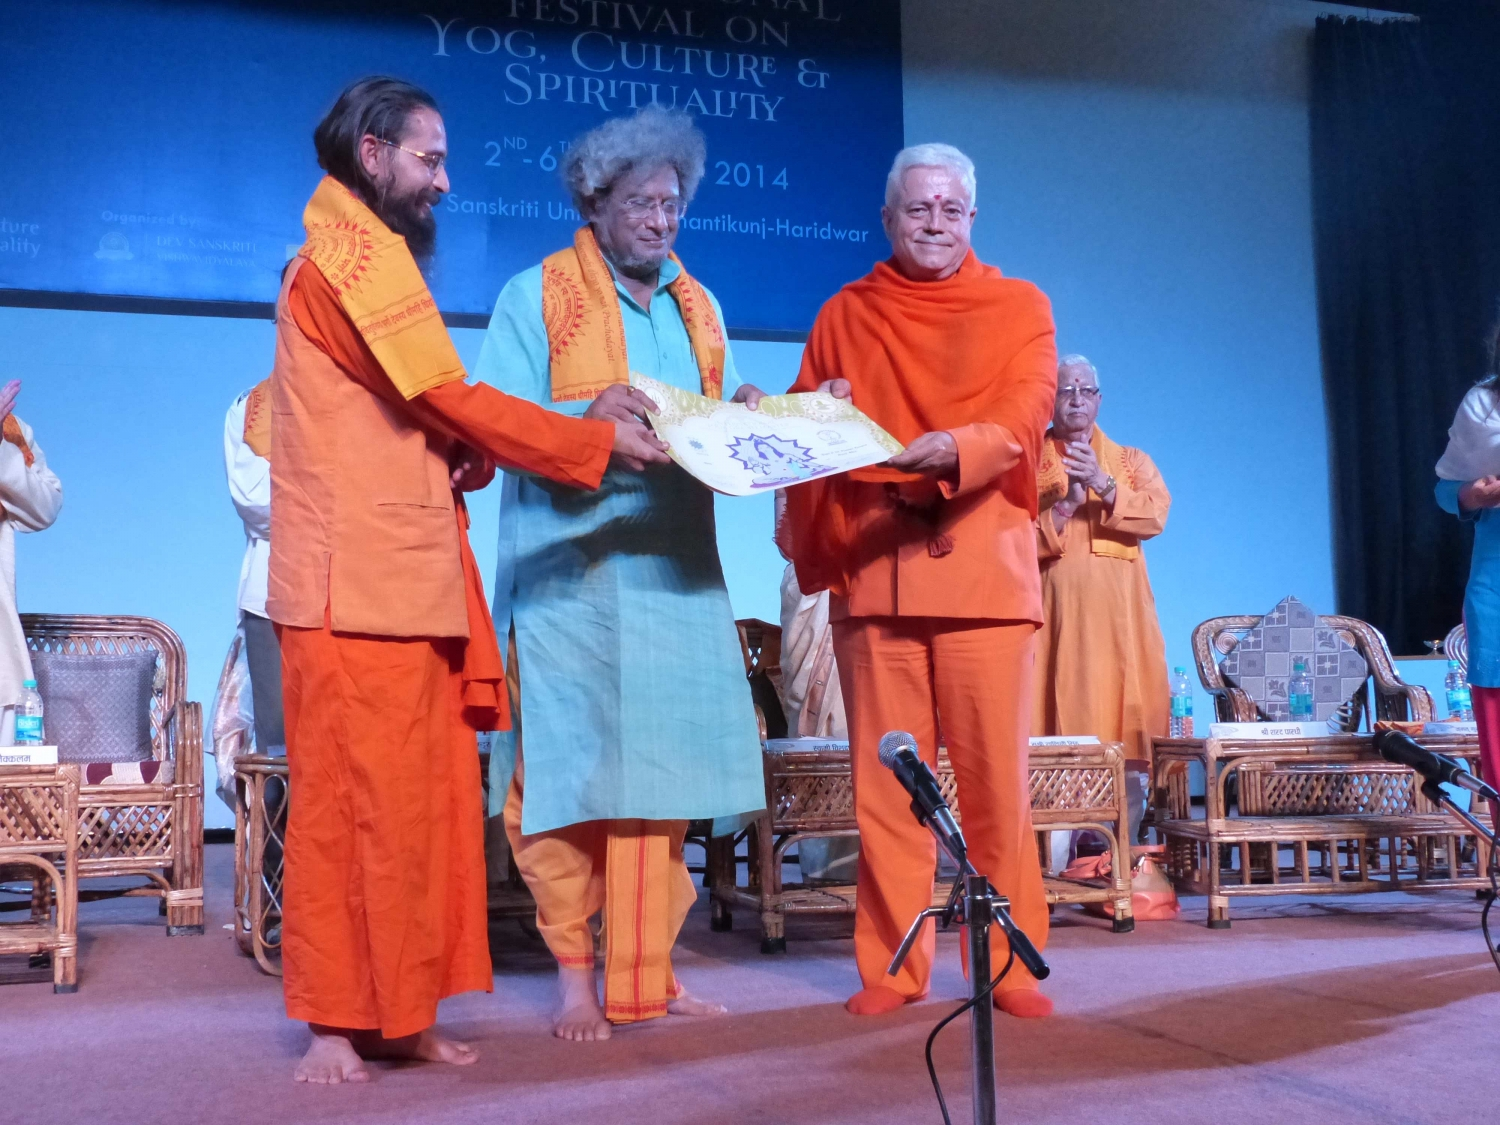 Attribution by the Portuguese Yoga Confederation of the Title of Grand International Yoga Master and Keilasha award to Dr. Pranav Pandya - Shantikunj Áshrama, Haridvar, India - 2014, October